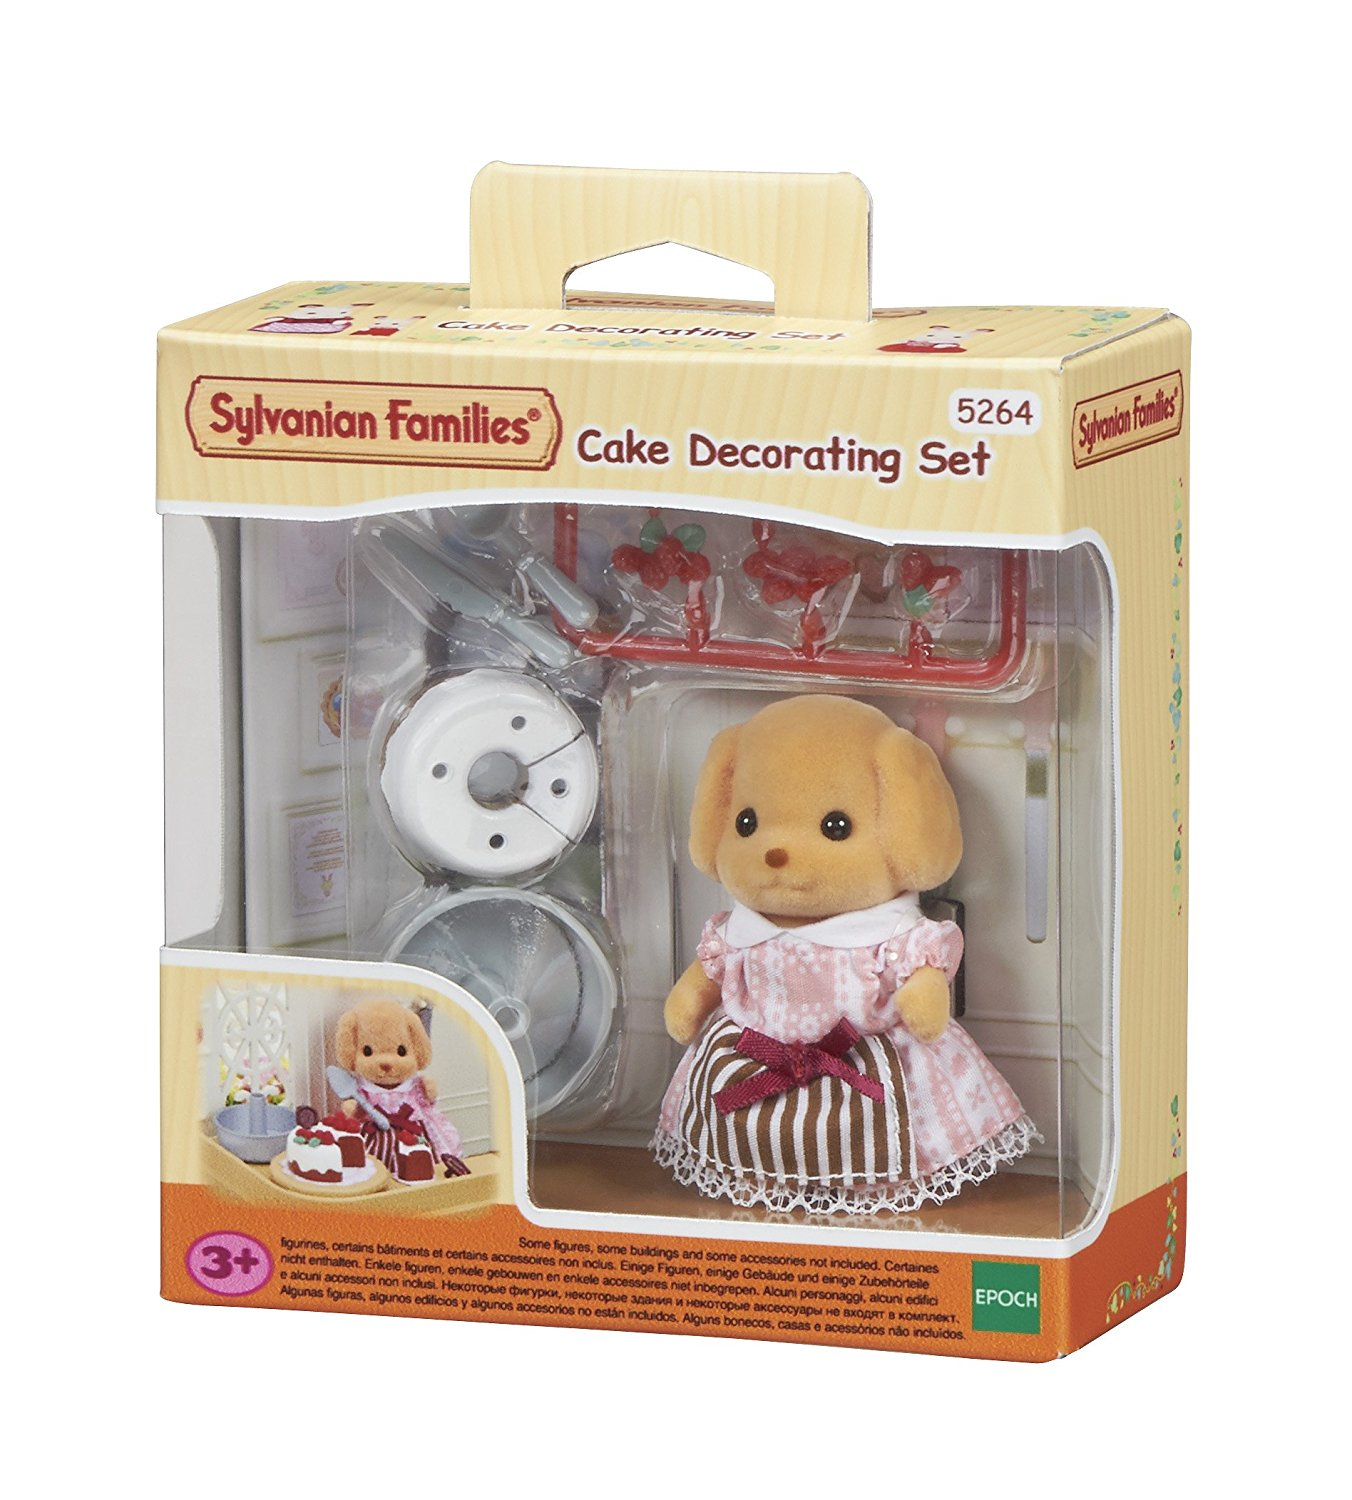 Sylvanian Families Cake Decorating Set eBay